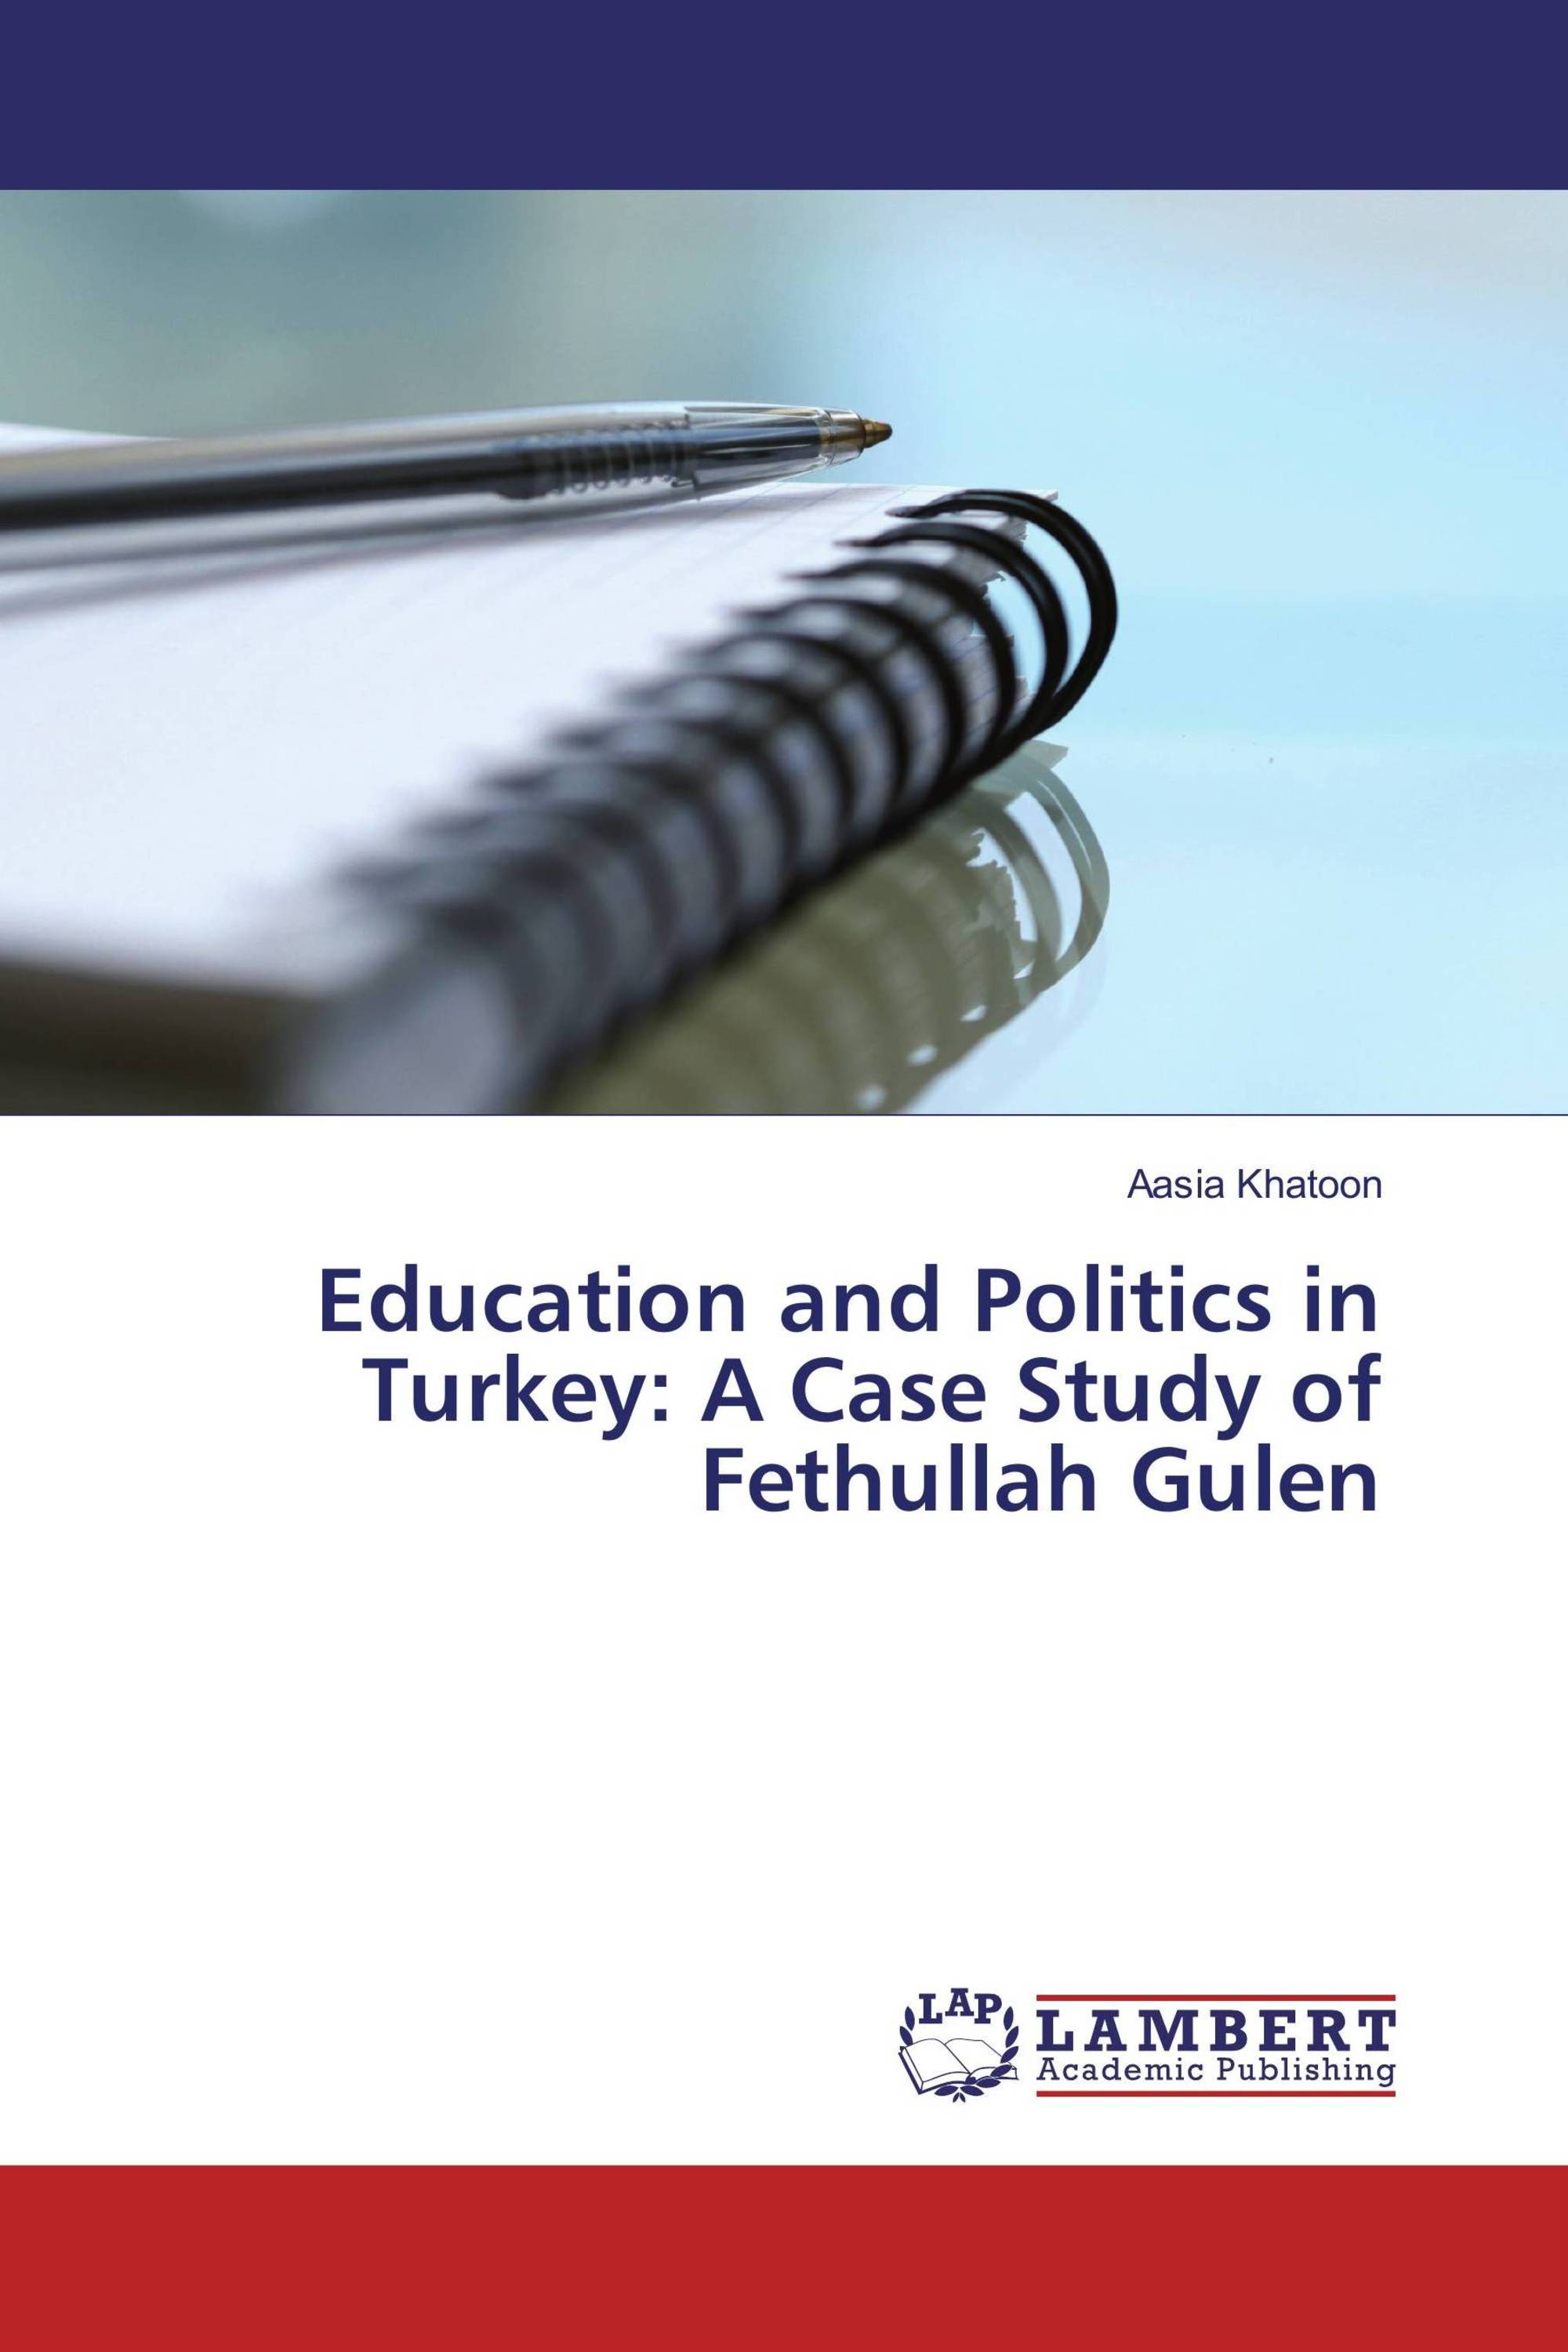 Education and Politics in Turkey: A Case Study of Fethullah Gulen